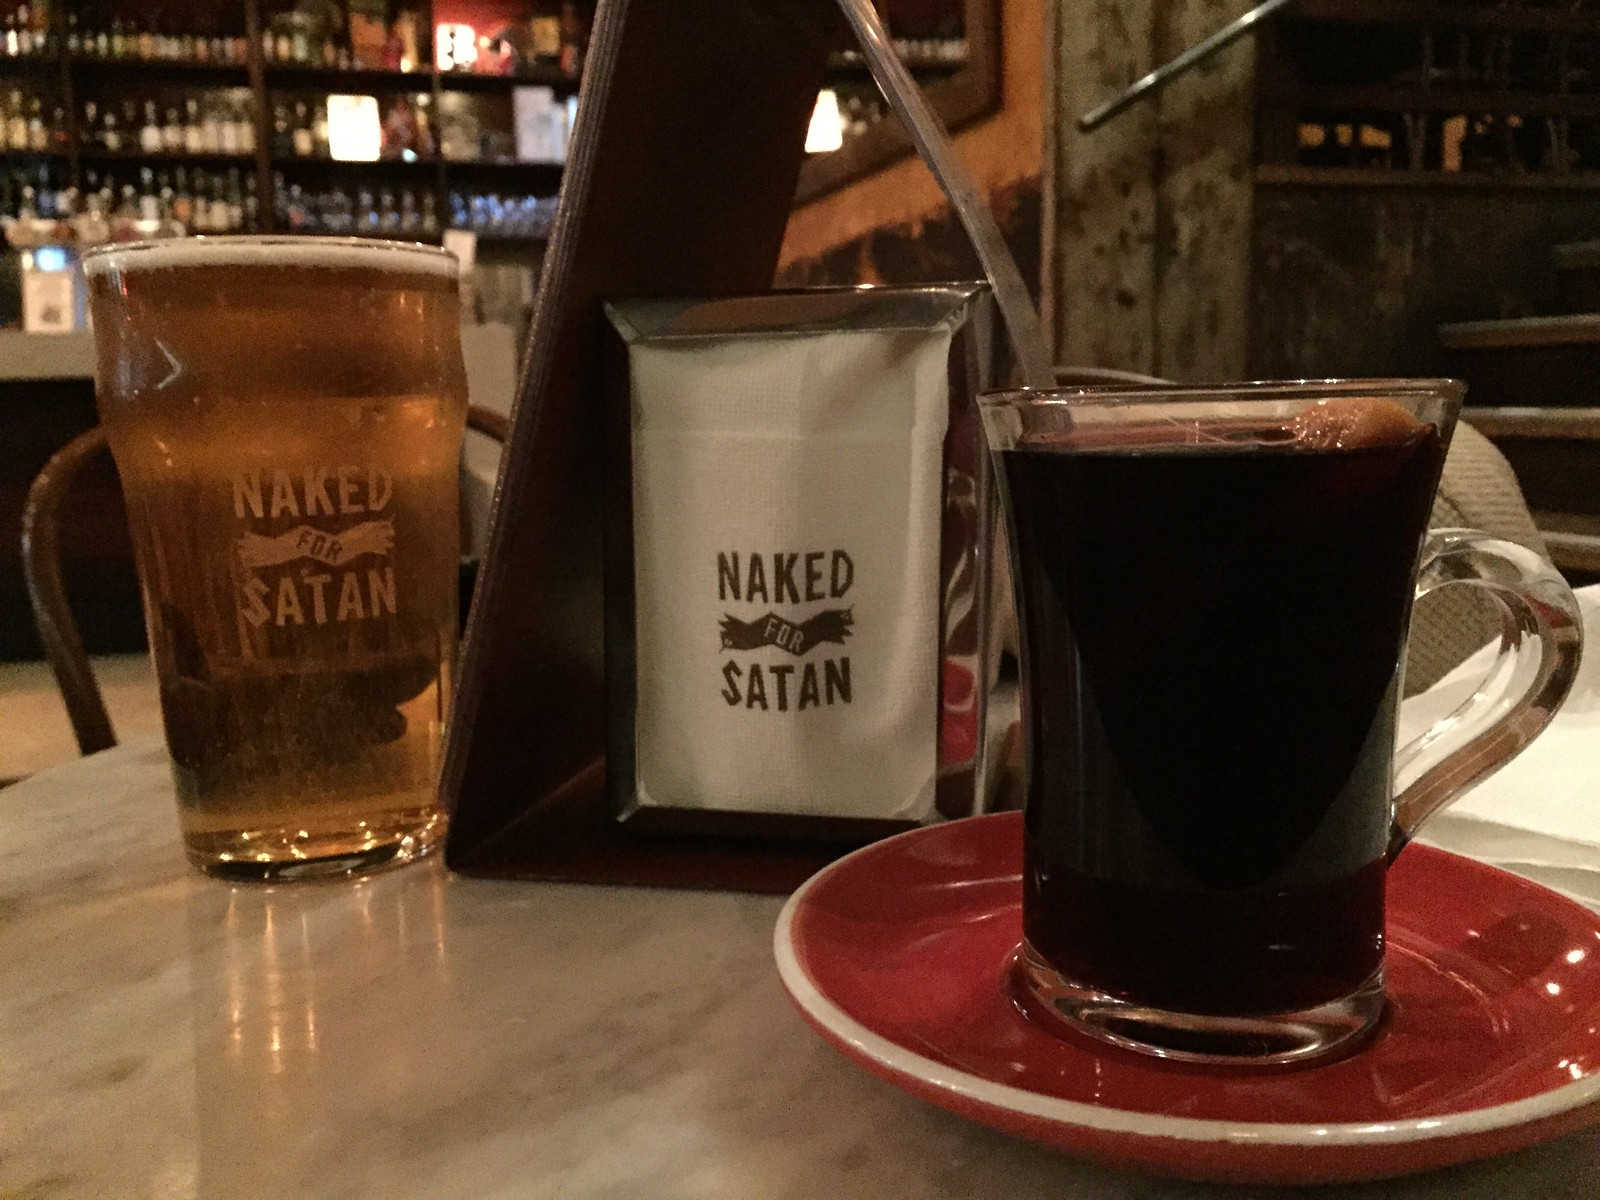 Mulled wine - Naked for Satan